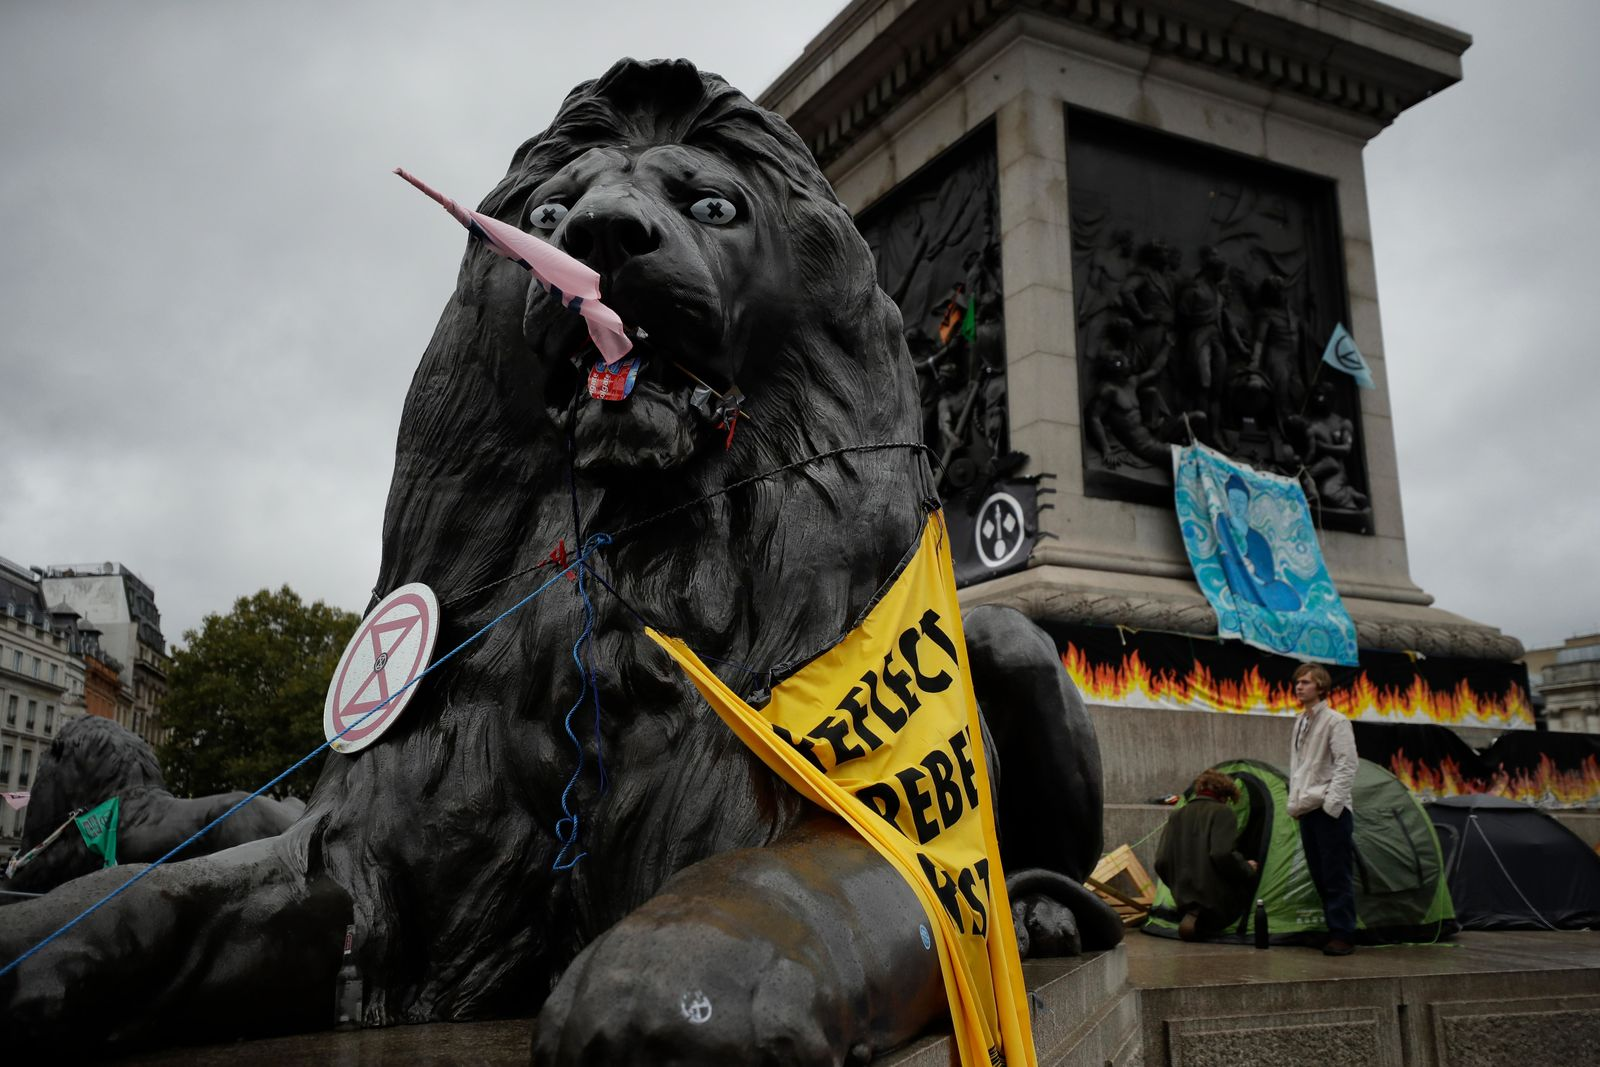 A lion statue is decorated by Extinction Rebellion climate change protesters in Trafalgar Square, London, Friday, Oct. 11, 2019.{ } (AP Photo/Matt Dunham)